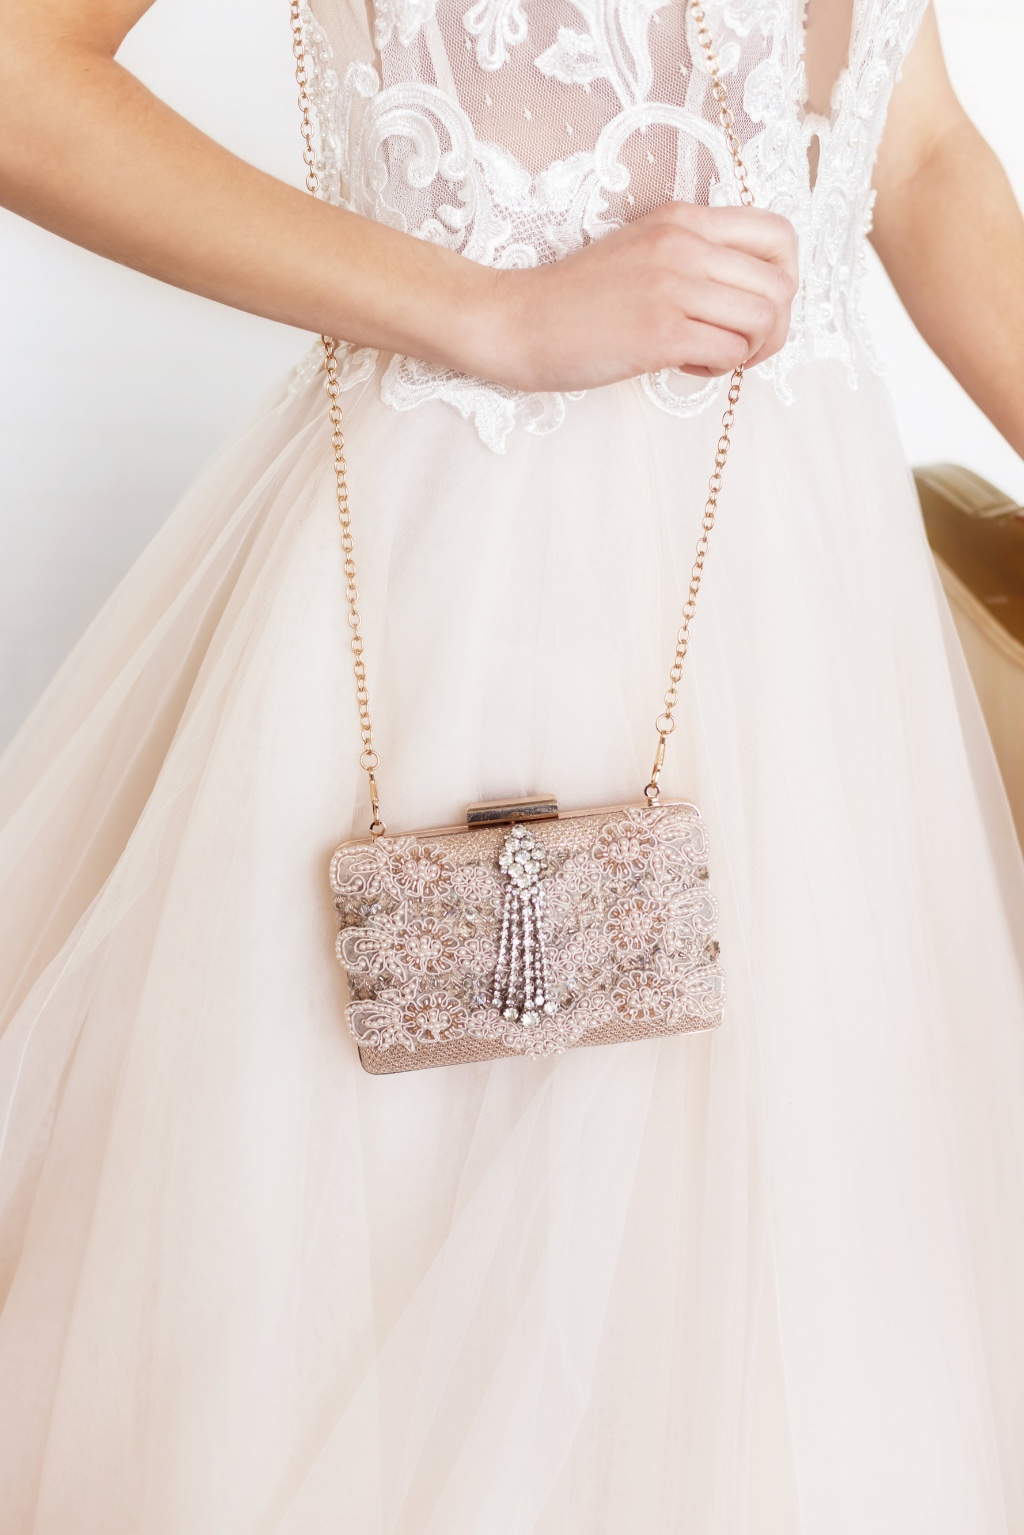 Just a little touch of Blush for the Spring brides.